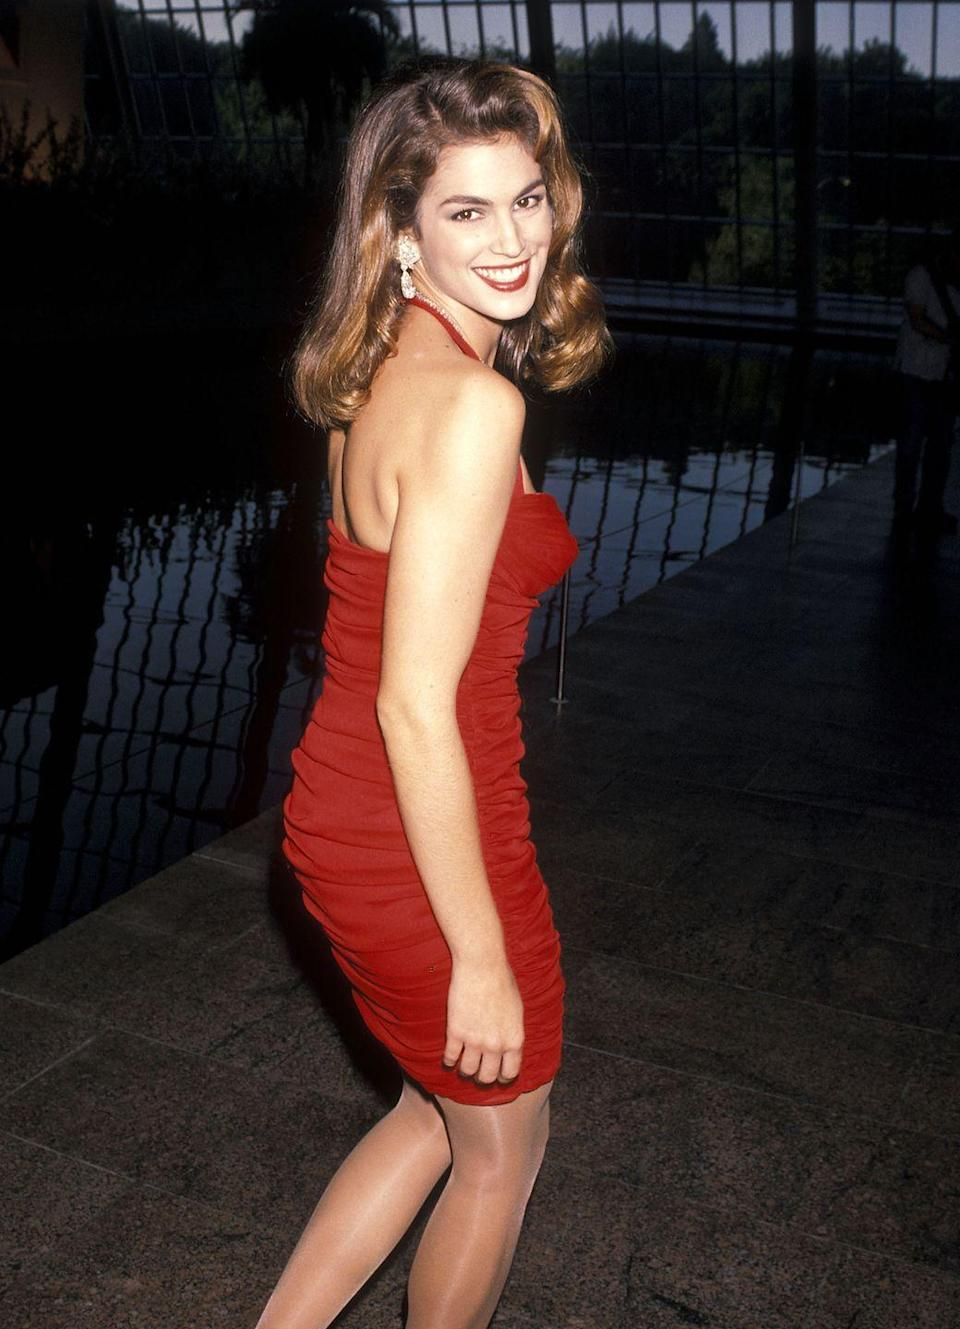 <p>In 1990, supermodel Crawford attended a Revlon event at New York City's Metropolitan Museum of Art in a striking red dress. <br></p>